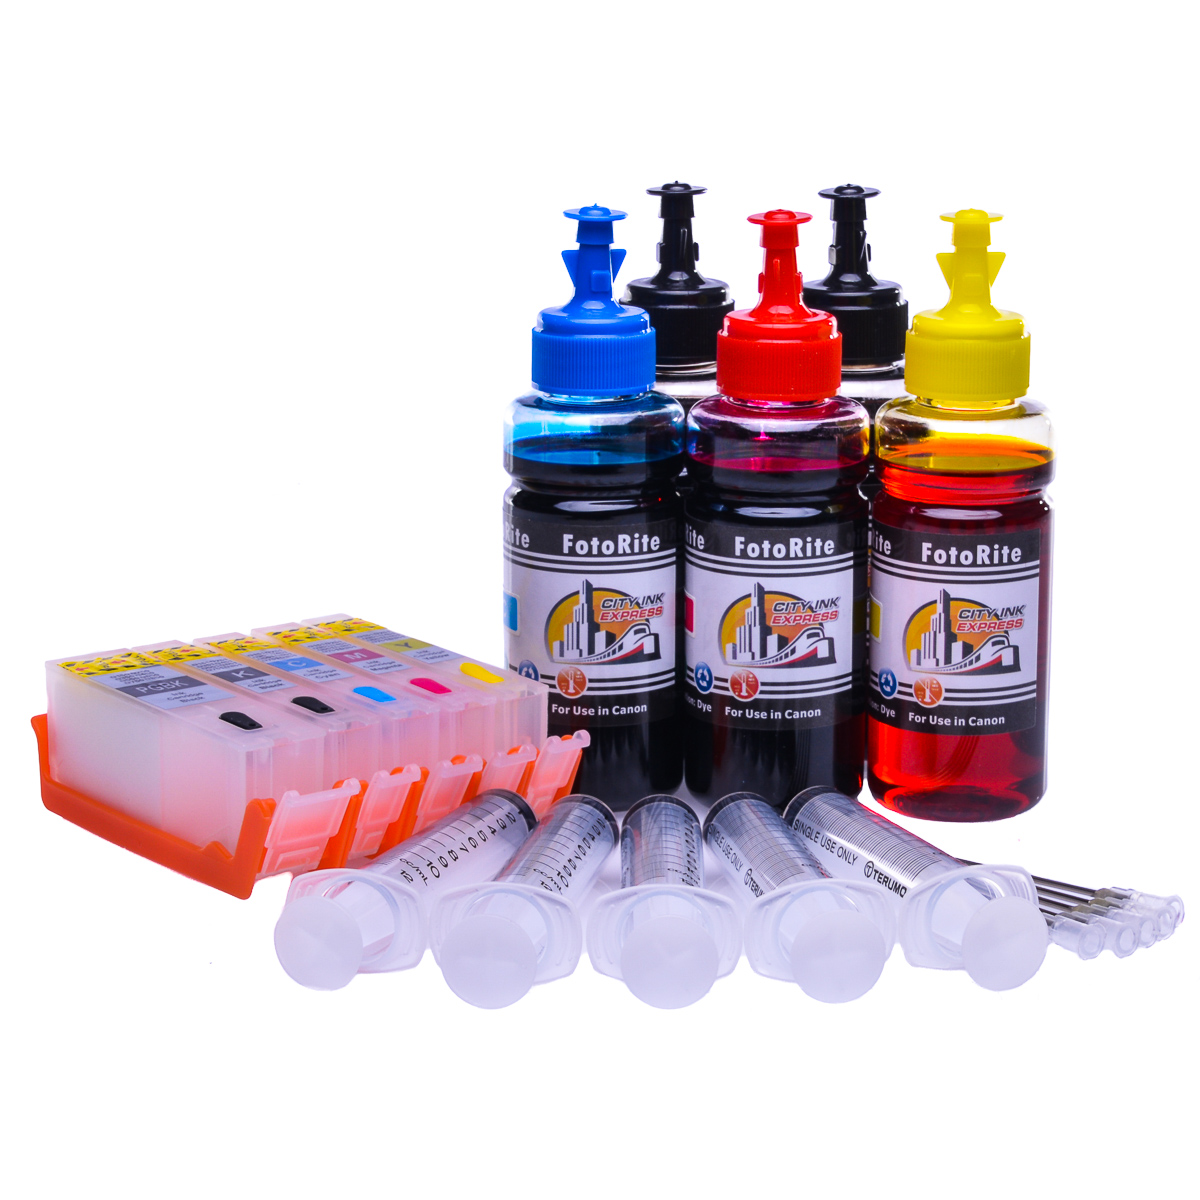 Multipack Cheap printer cartridges for Canon Pixma MG5650 | Refillable dye and pigment ink